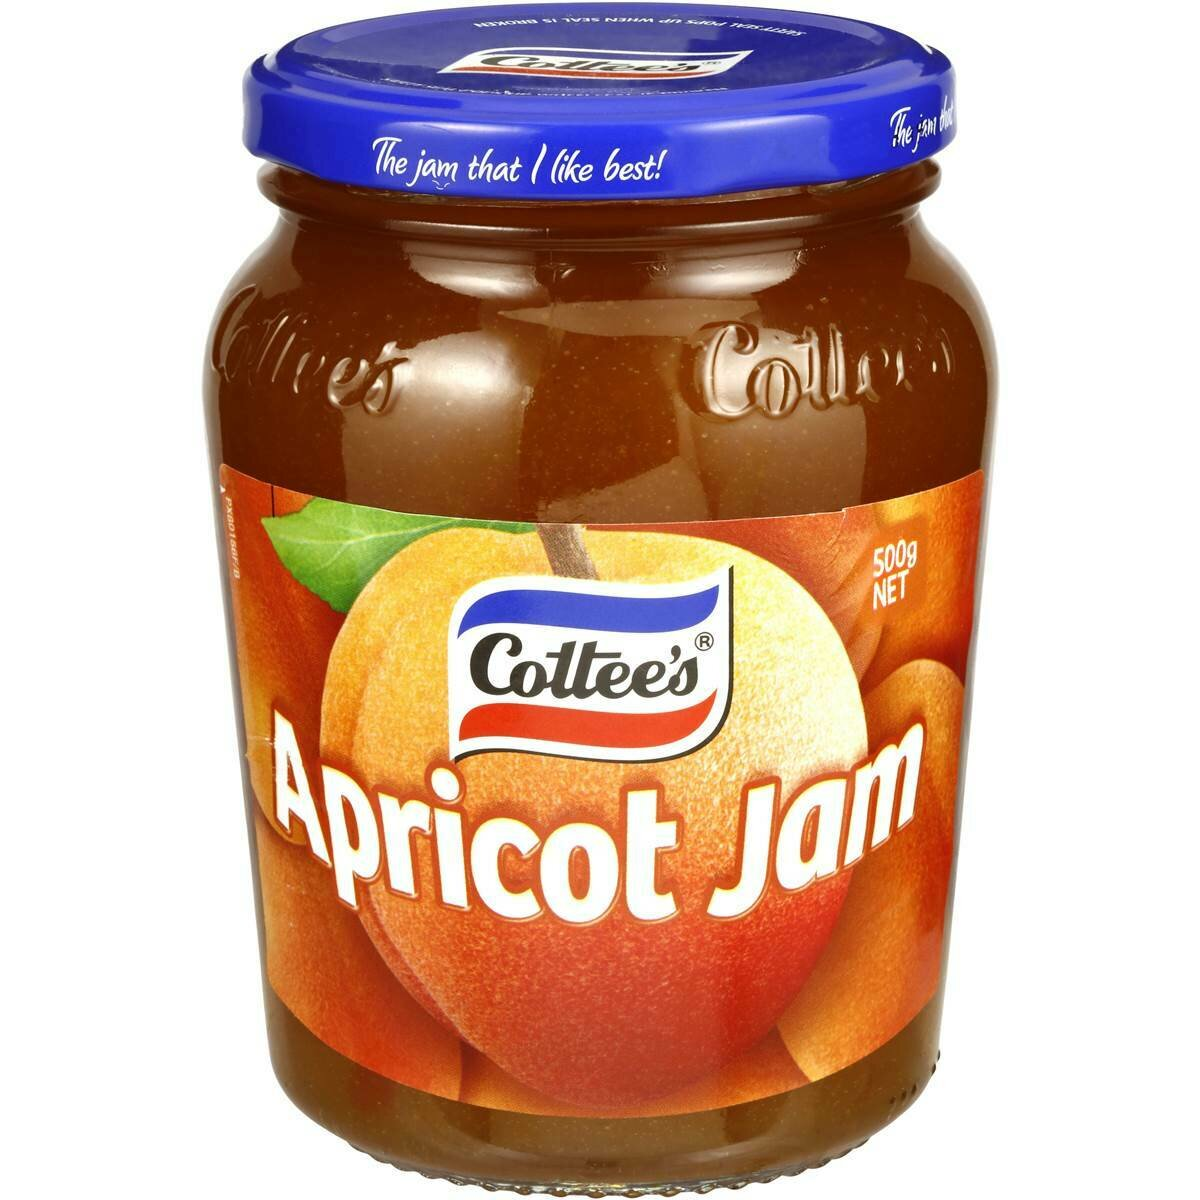 Cottees Apricot Jam 500G